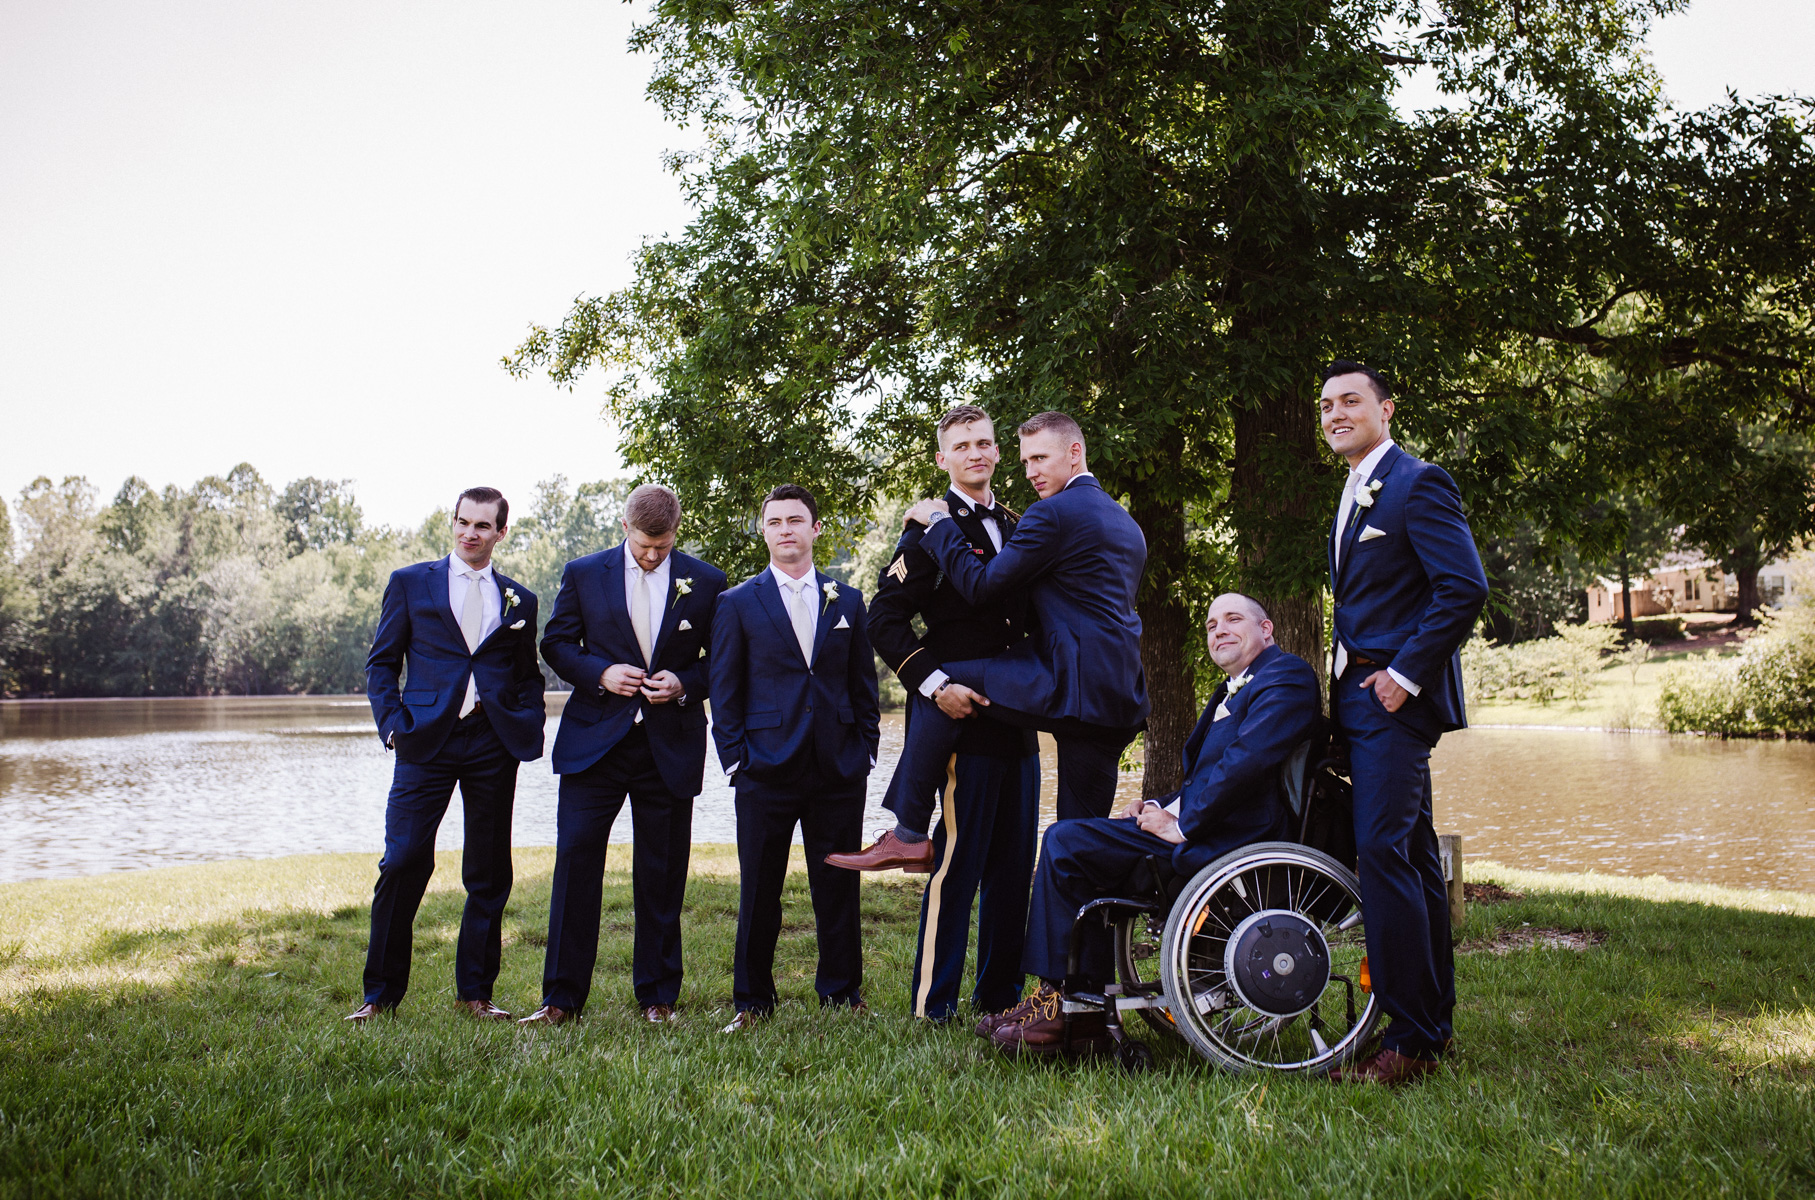 Wedding Bridal Party - Groom and Groomsmen | Kayli LaFon Photography